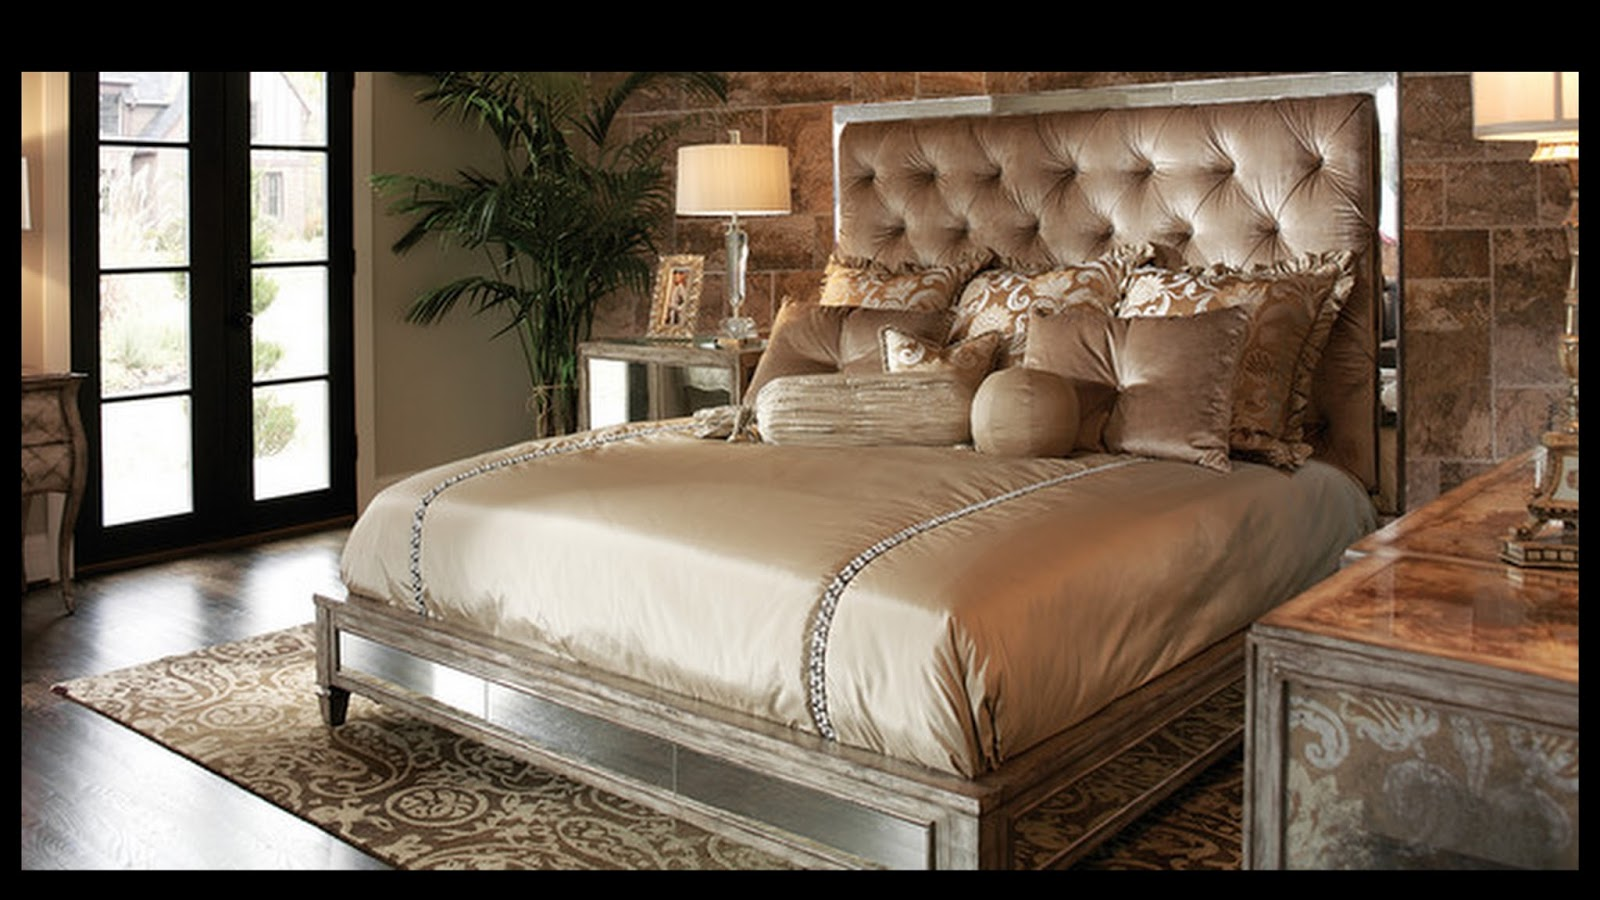 Old hollywood glamour old hollywood furnishings for Old hollywood glam furniture